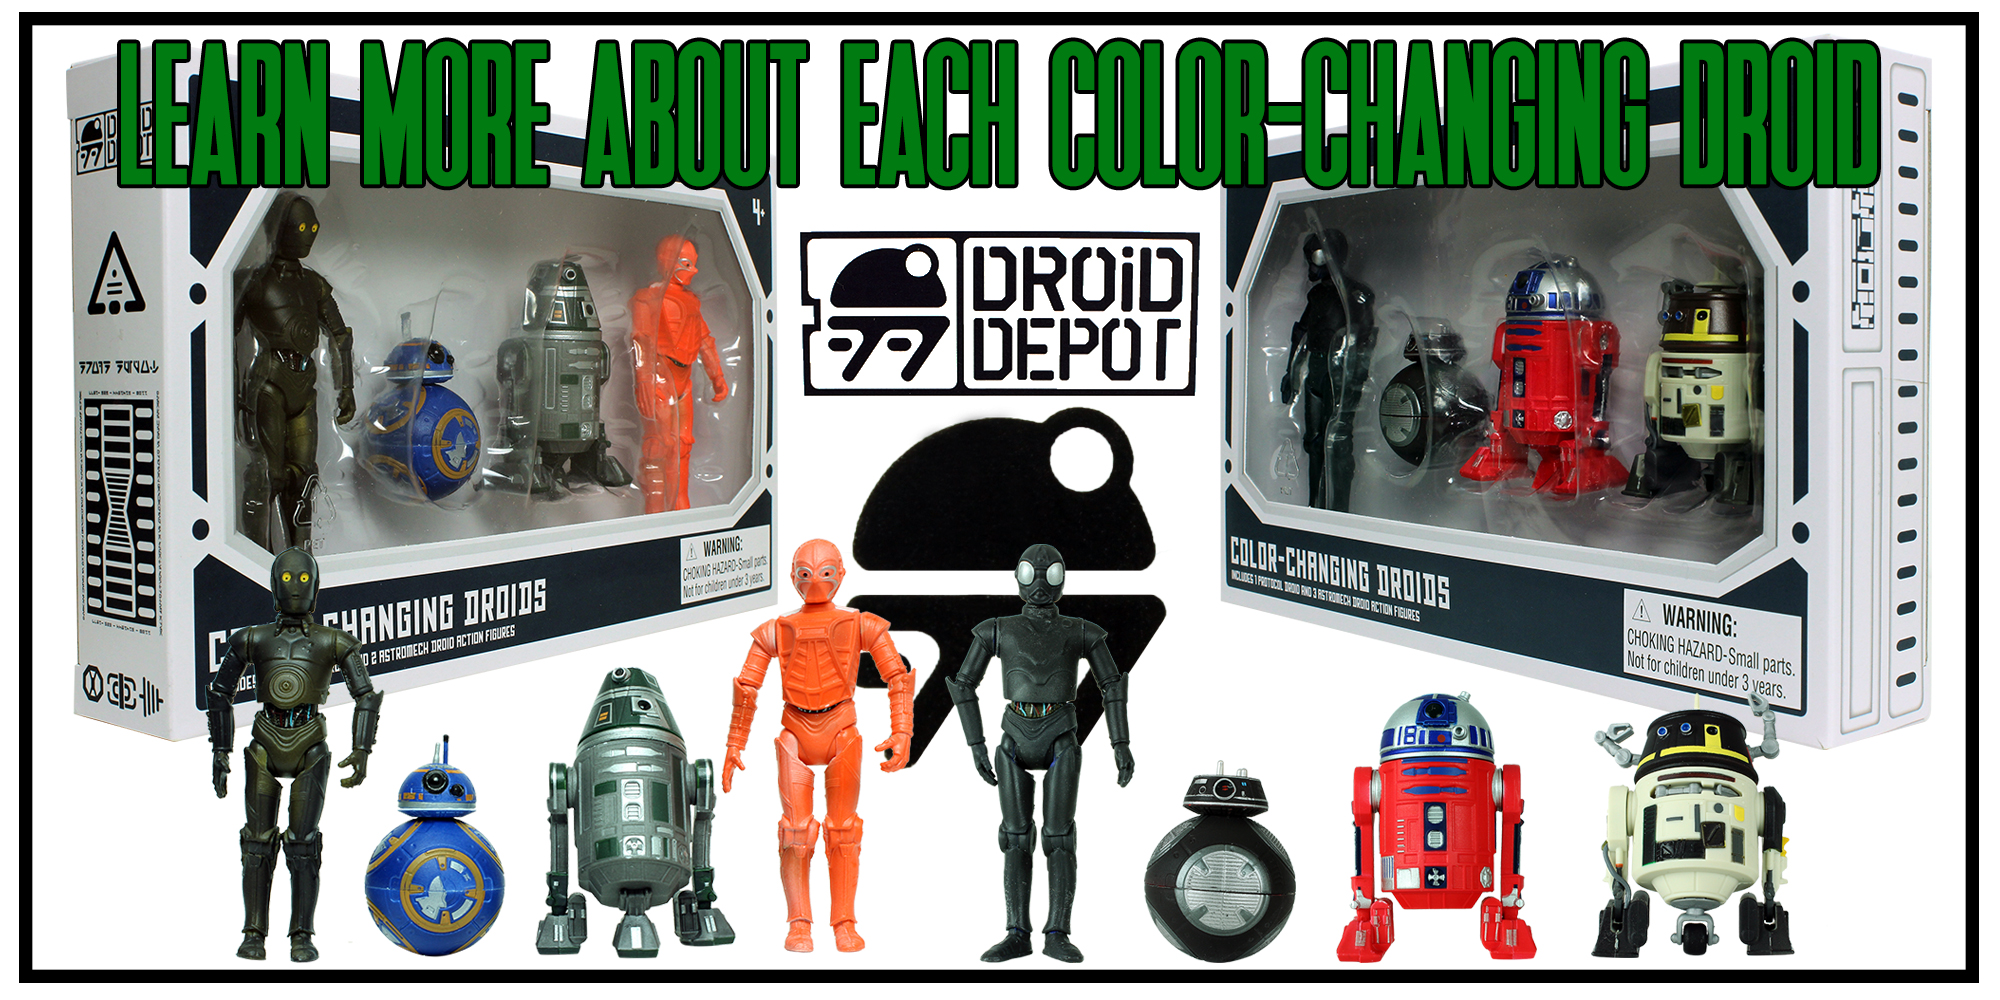 Learn More About The Color-Changing Droids